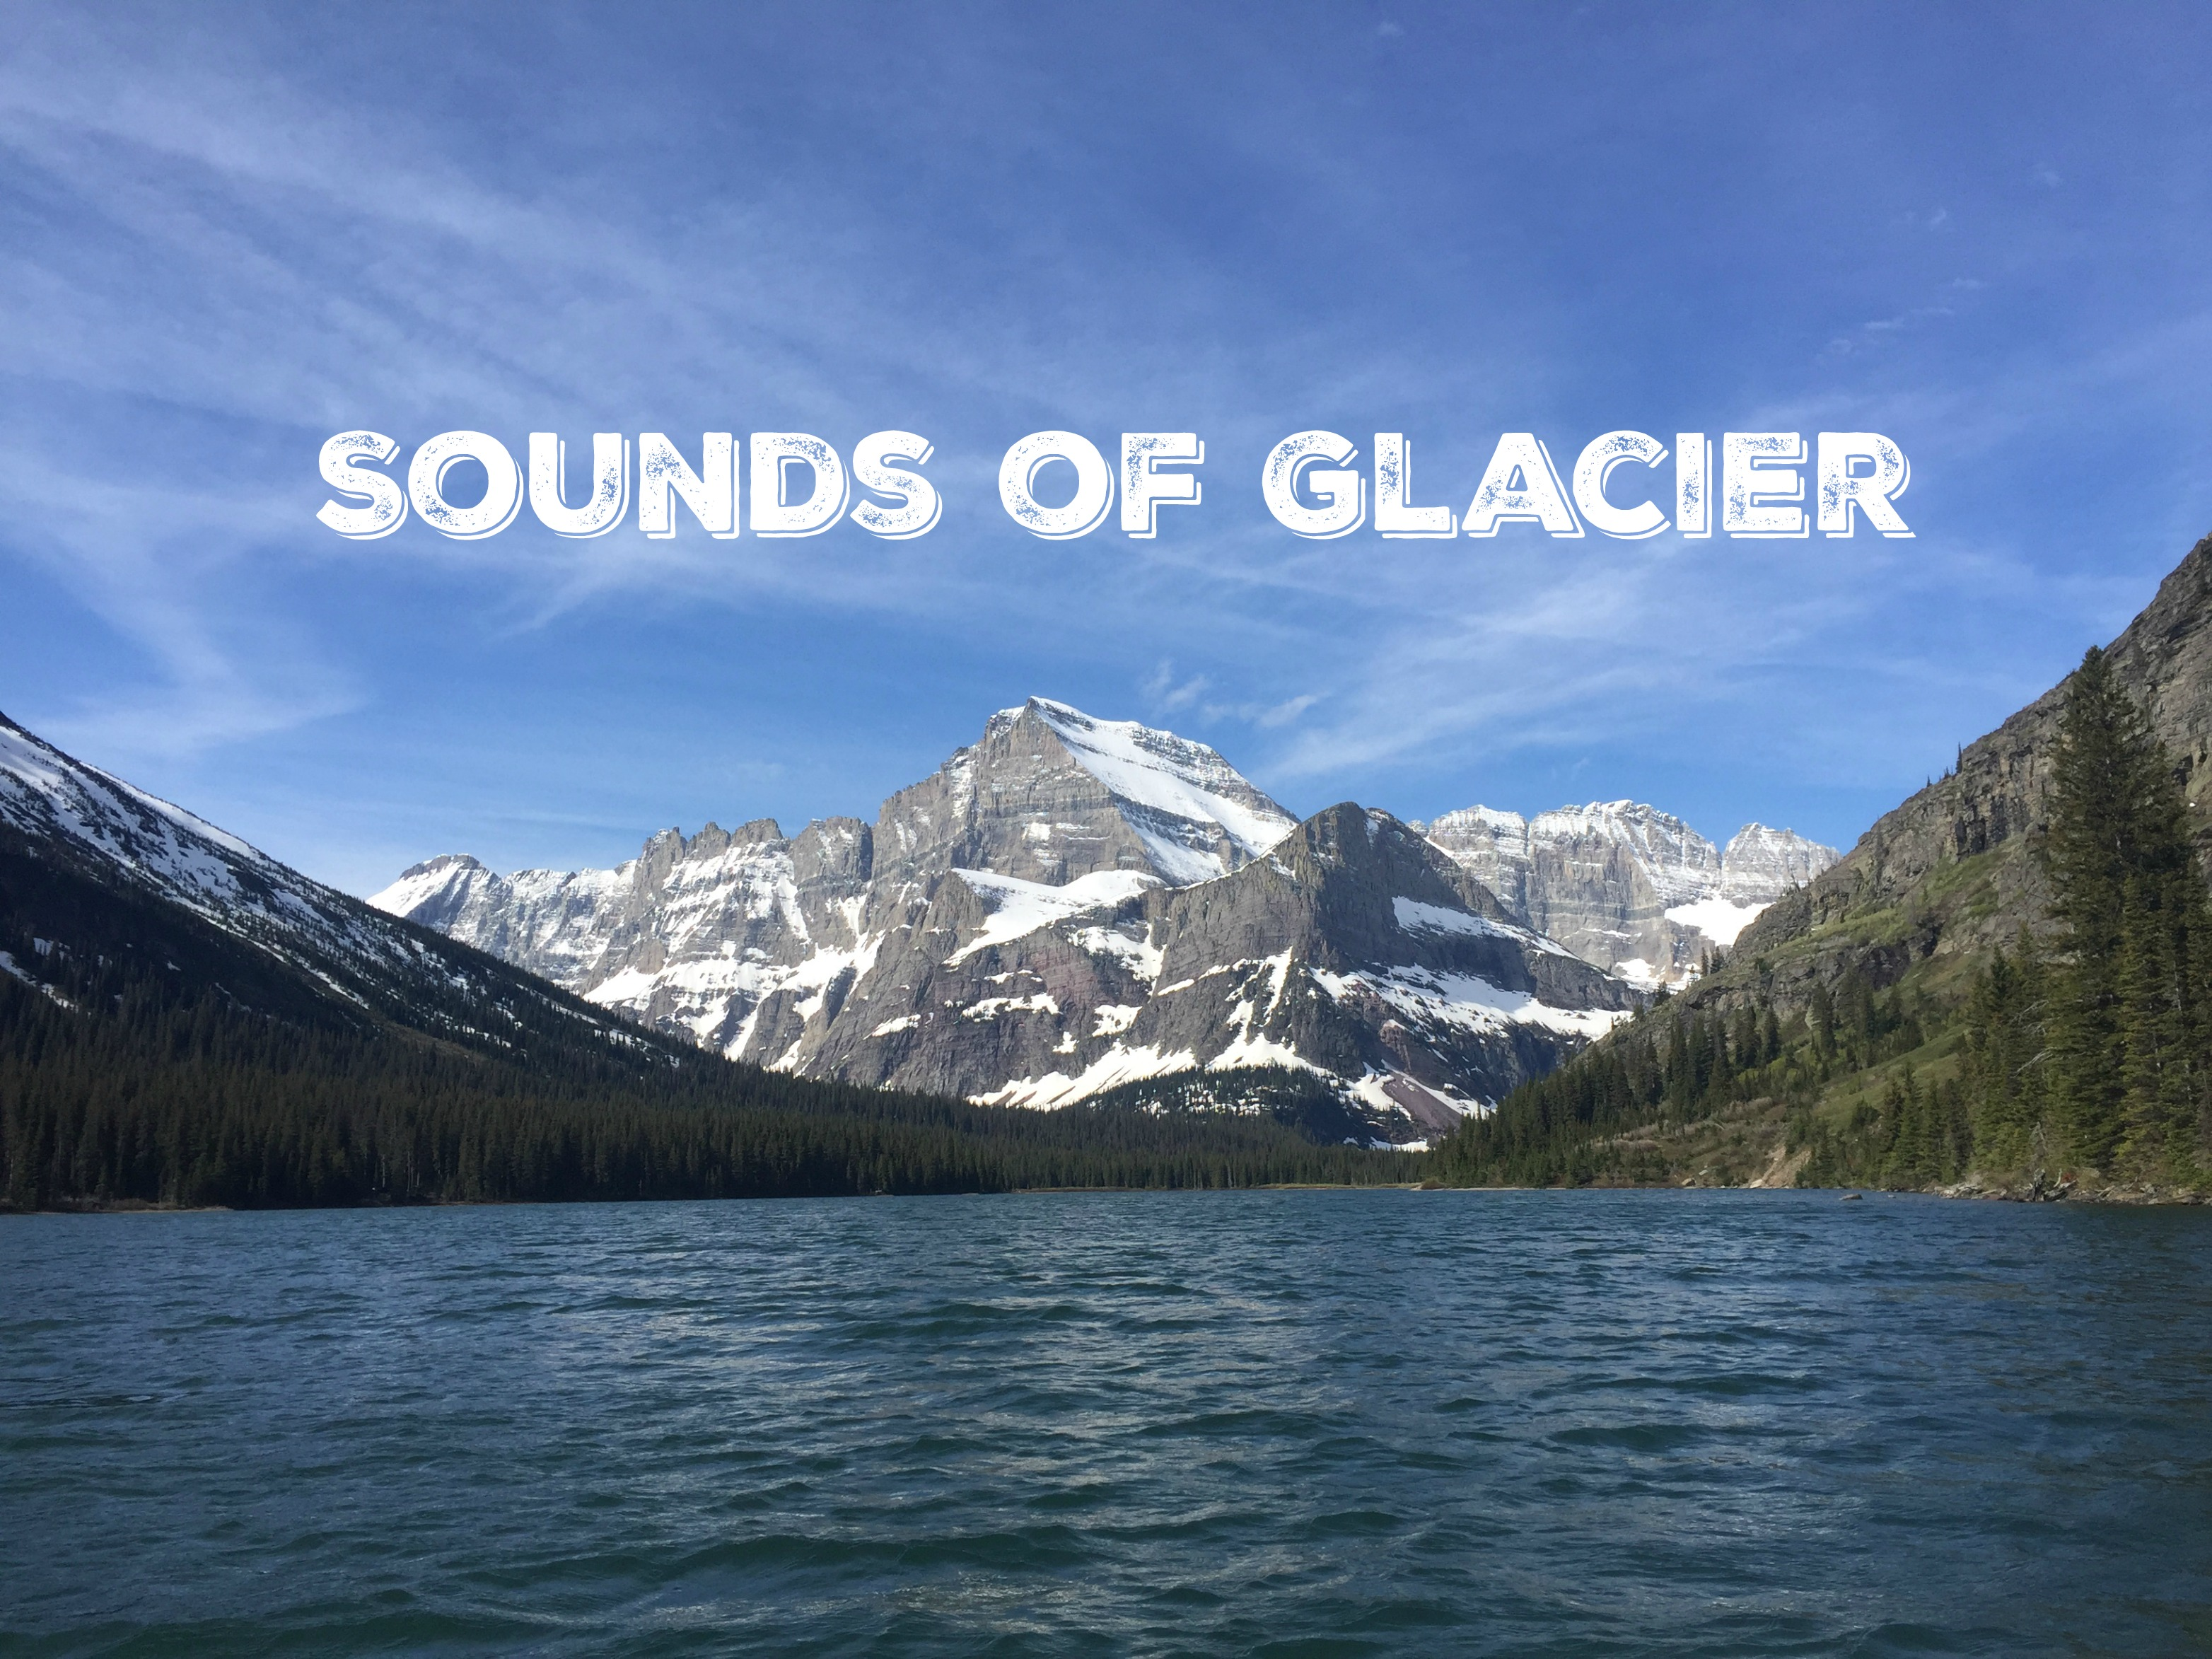 SOUNDS OF GLACIER NATIONAL PARK: A sensory experiment